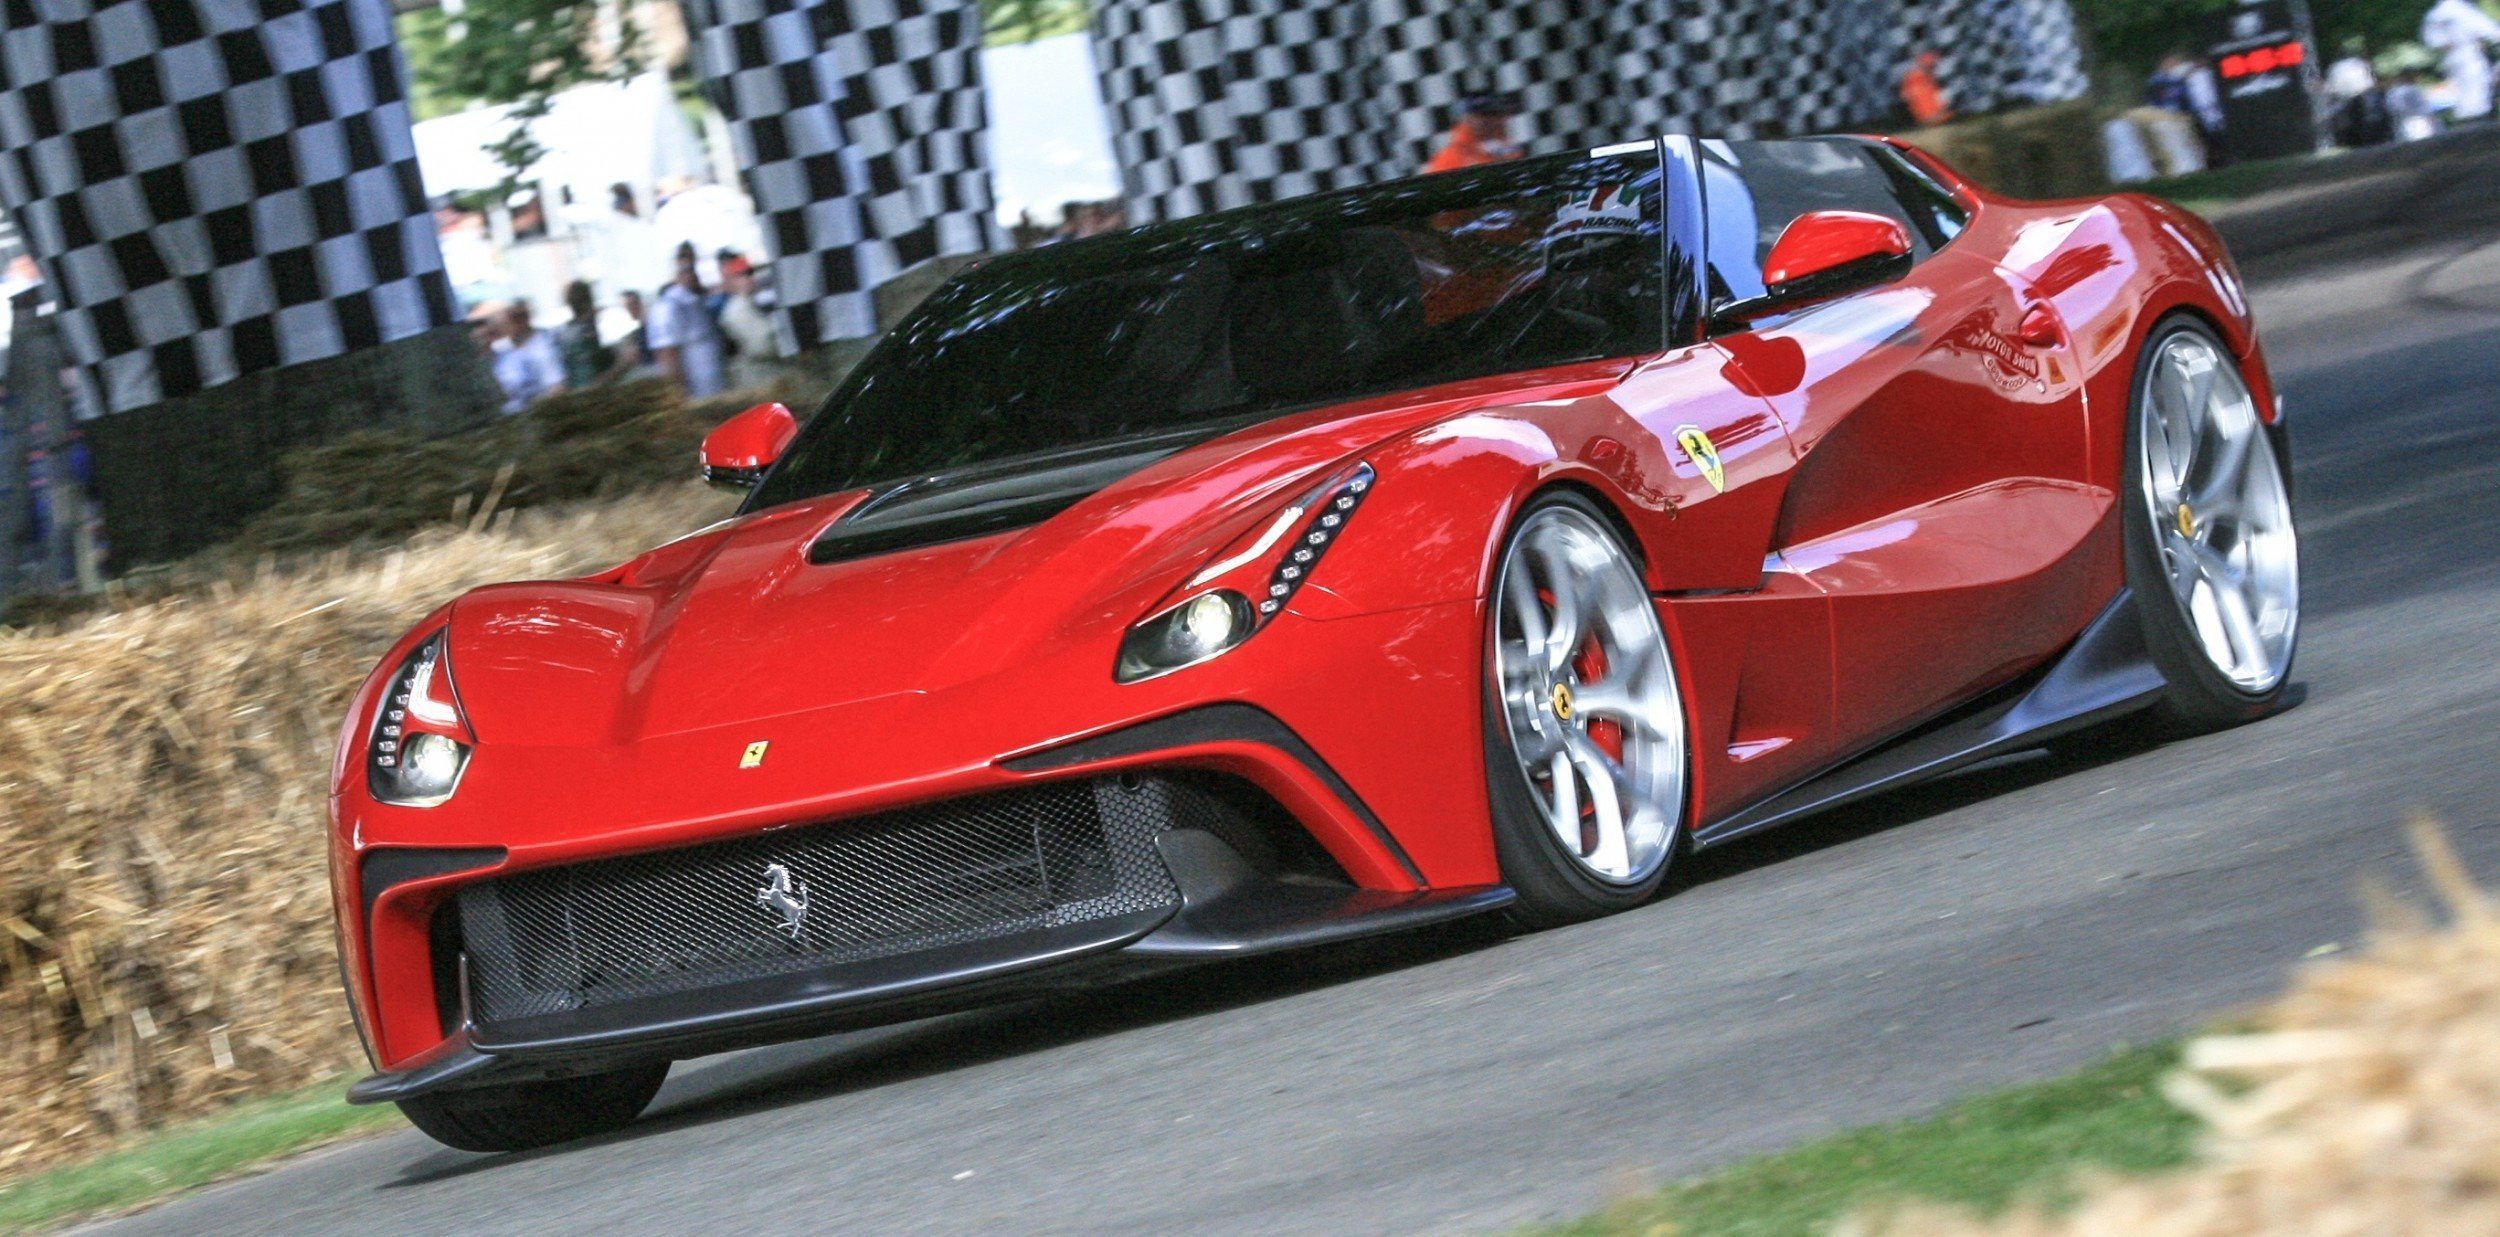 31s 2015 ferrari f60 america is 10 copy f12 spyder celebrating 60 jay kays green laferrari and f12 trs spyder cause deadly fanboy riots at 2014 goodwood fos15 vanachro Image collections